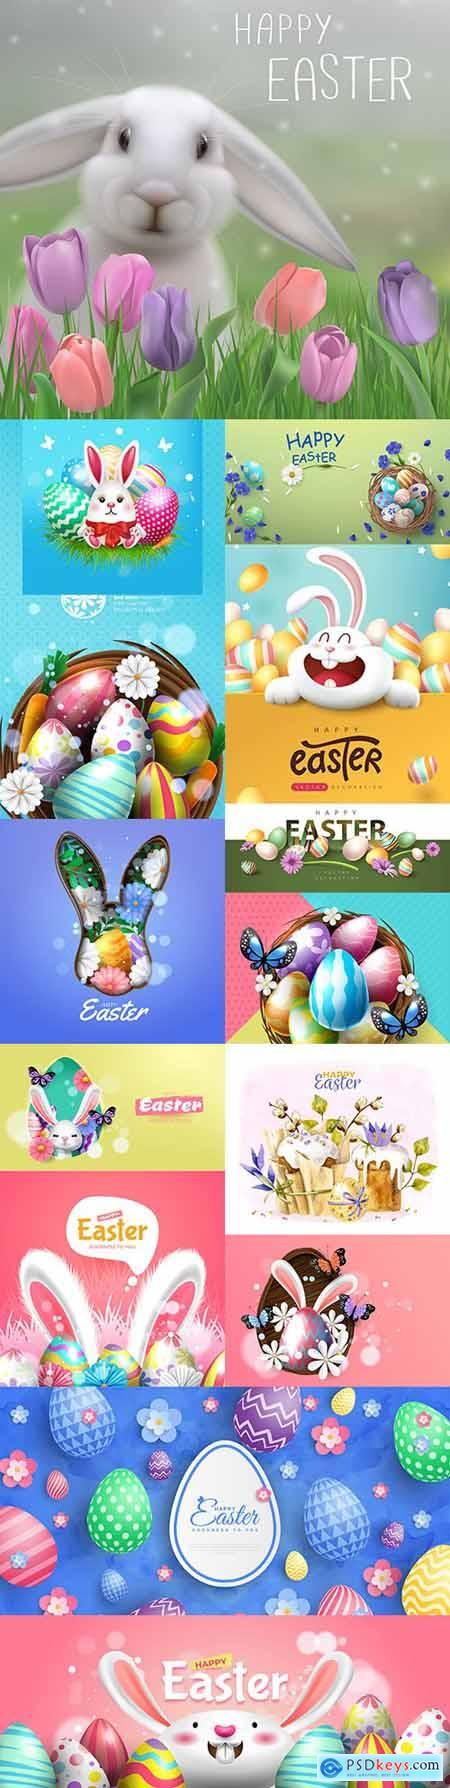 Happy Easter background and design banner with colorful eggs 2